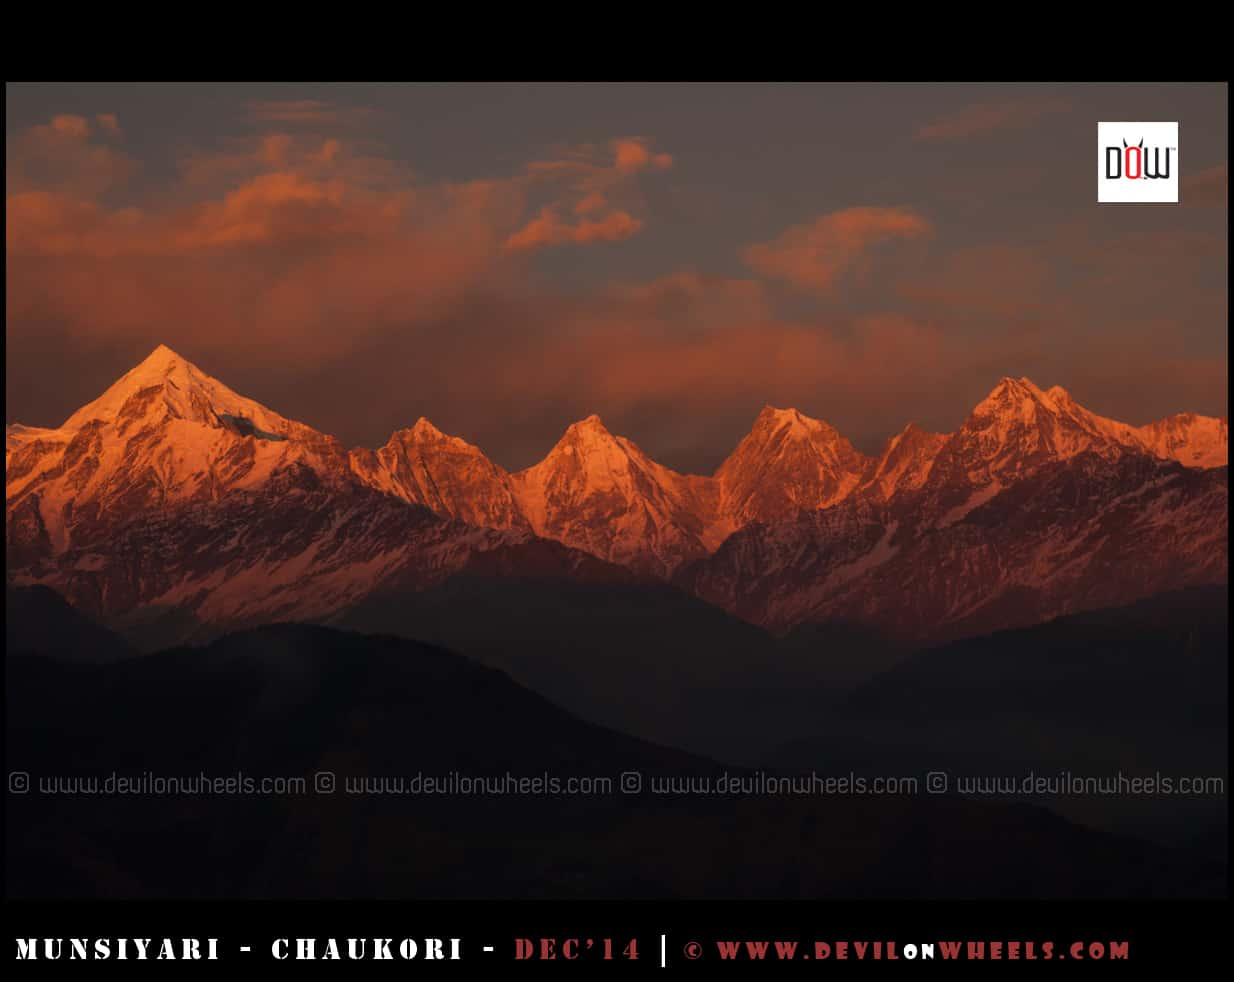 The Golden Glow - Sunset at Panchchuli Peaks as seen from Munsiyari